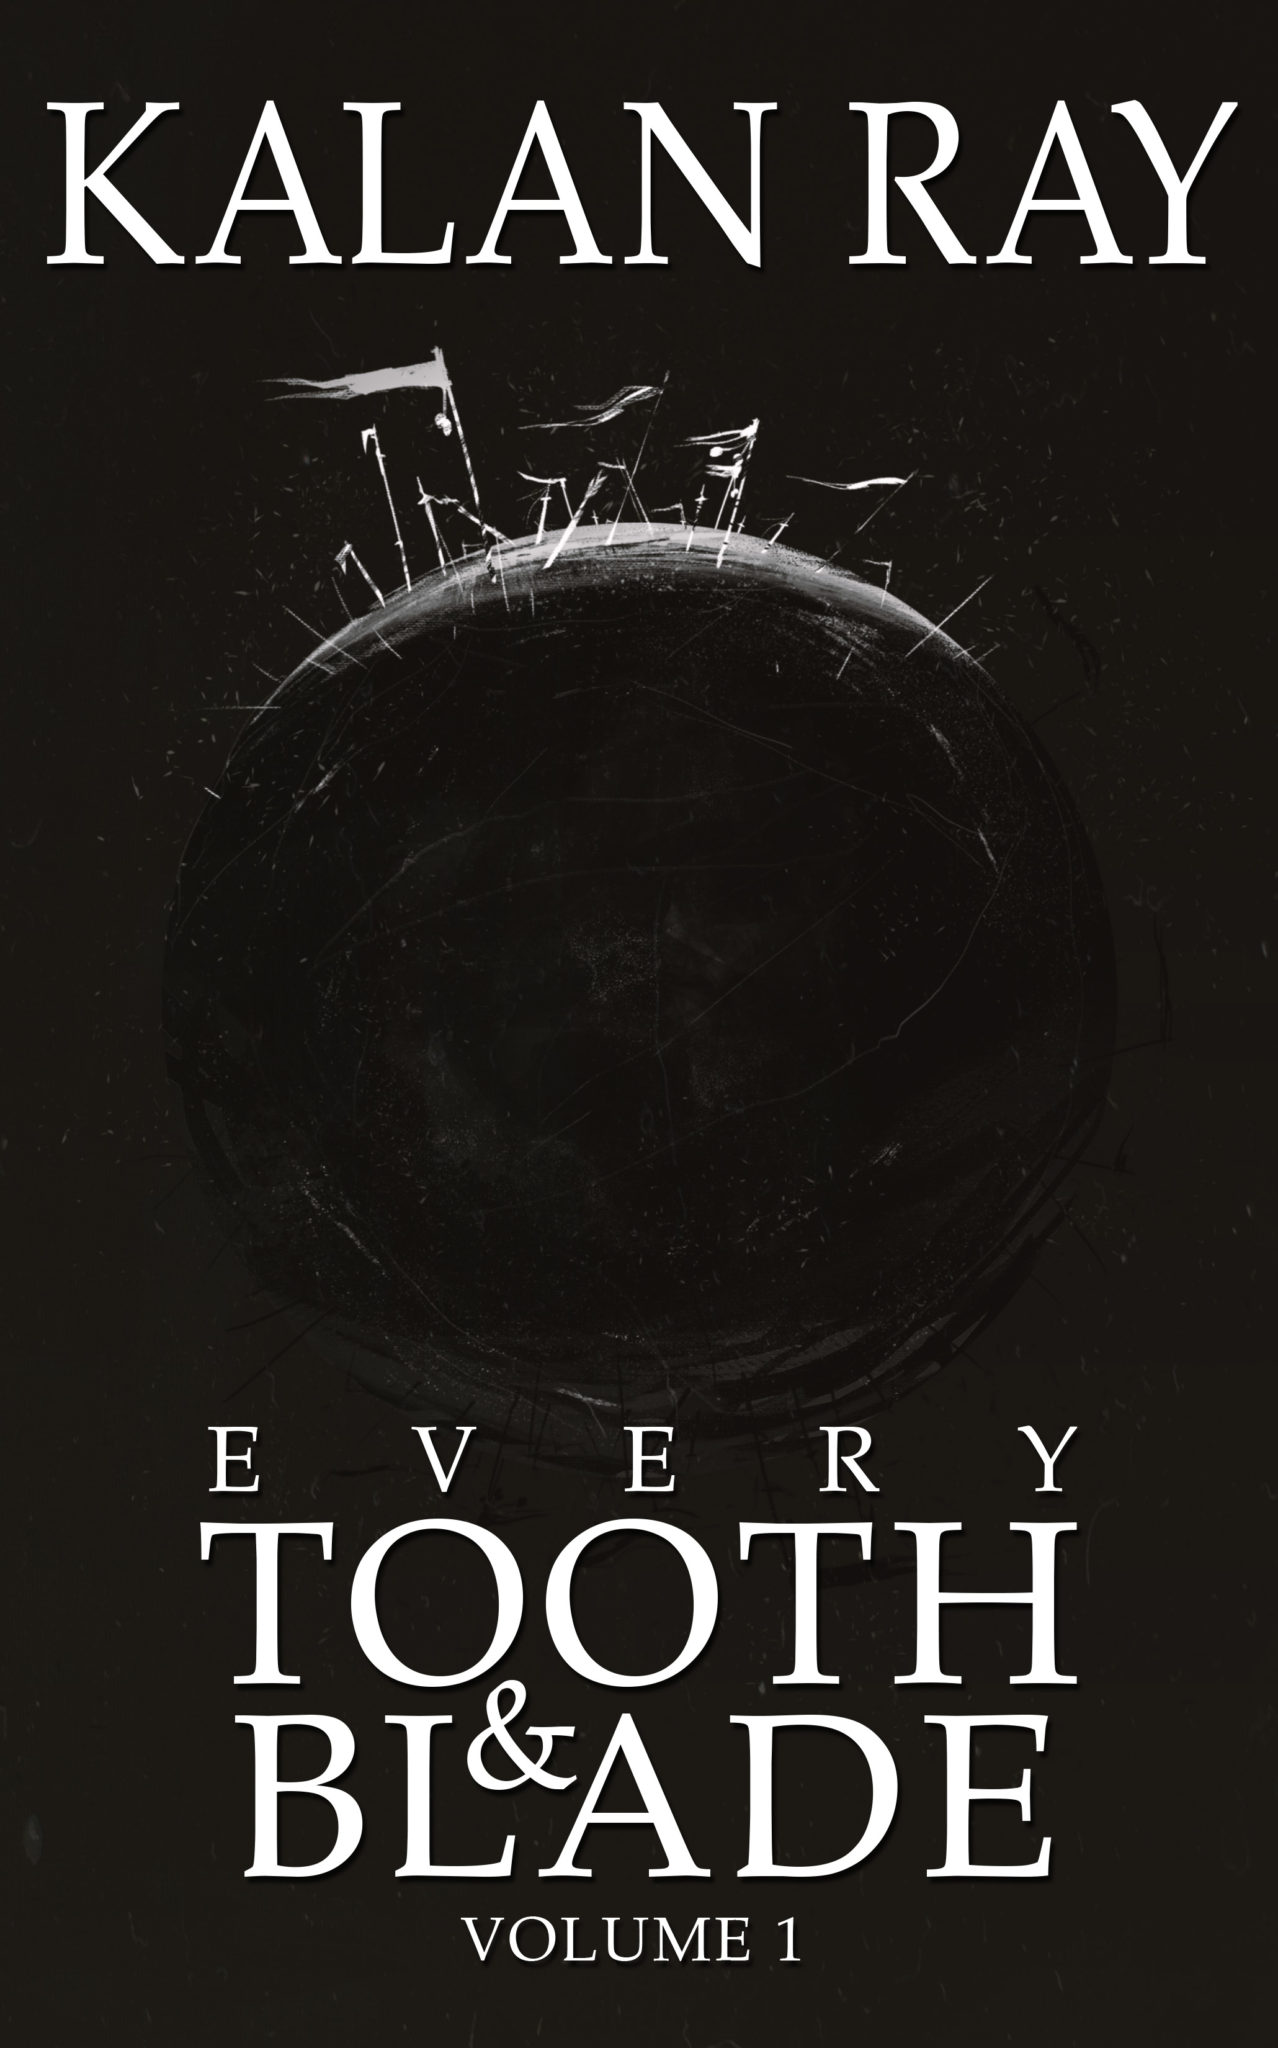 Every Tooth and Blade: Volume 1 by Kalan Ray